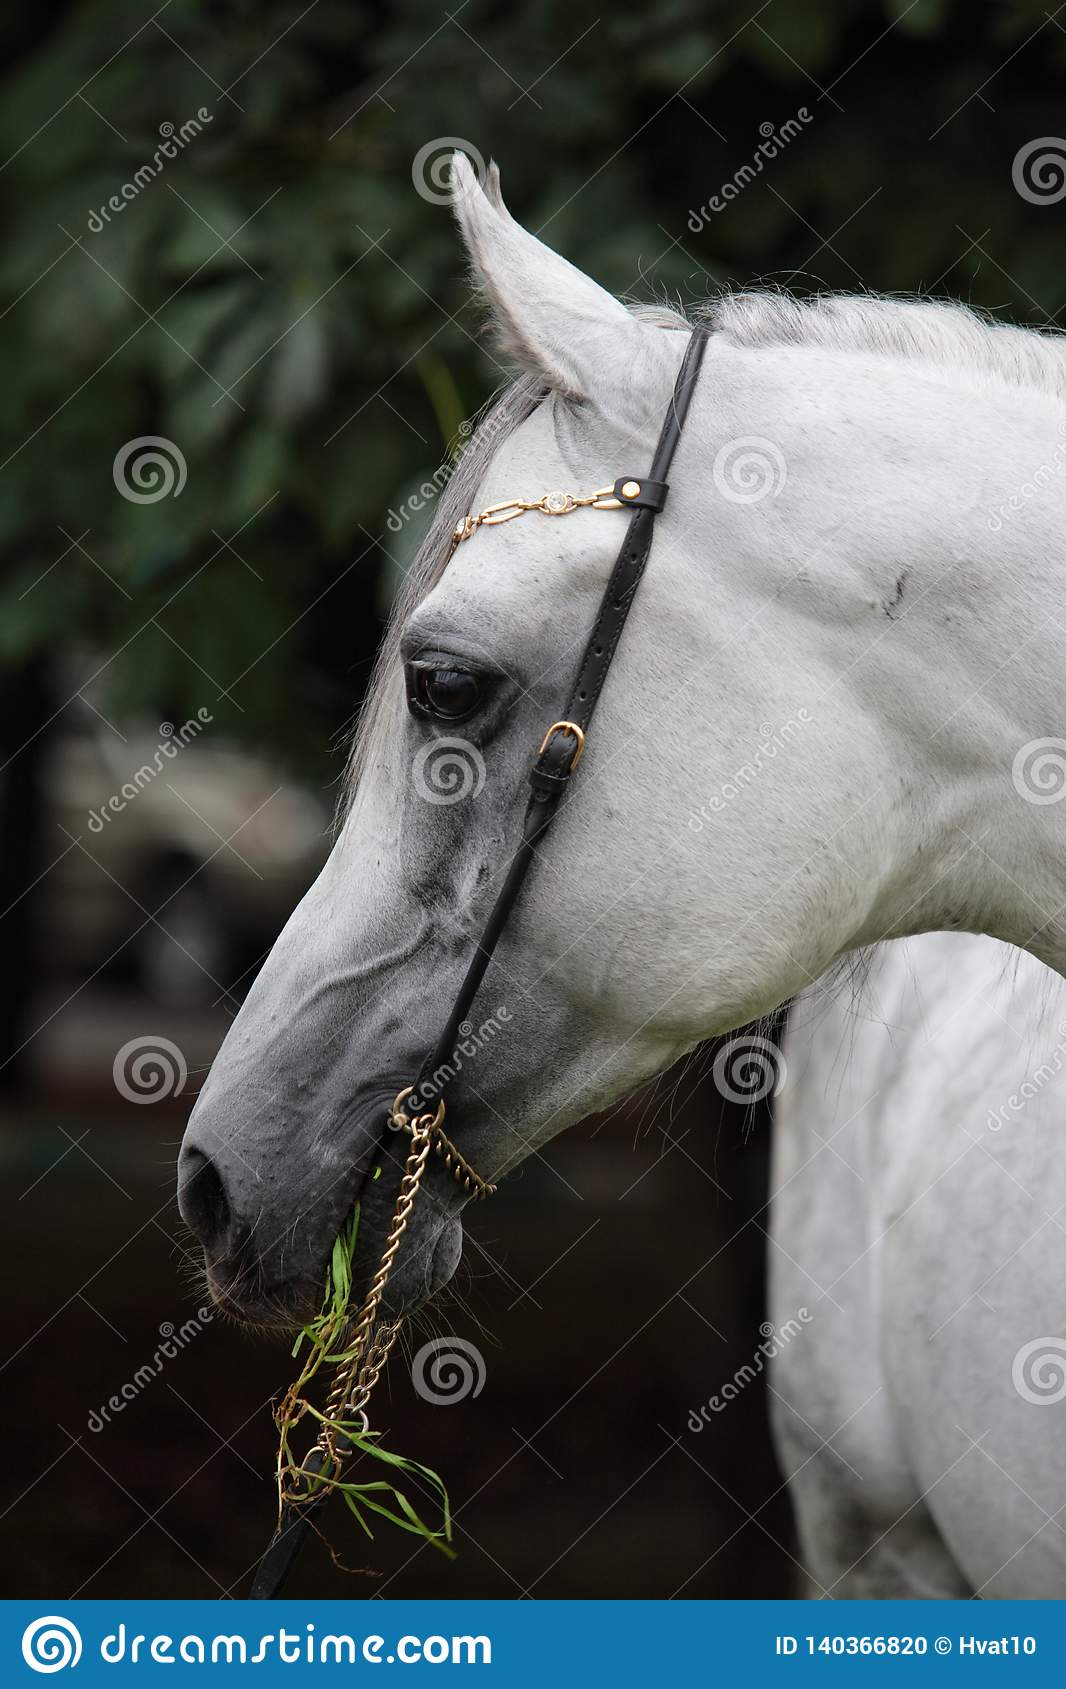 Purebred Arabian Horse Portrait Of A Grey Mare With Jewelry Bridle Stock Photo Image Of Nature Head 140366820